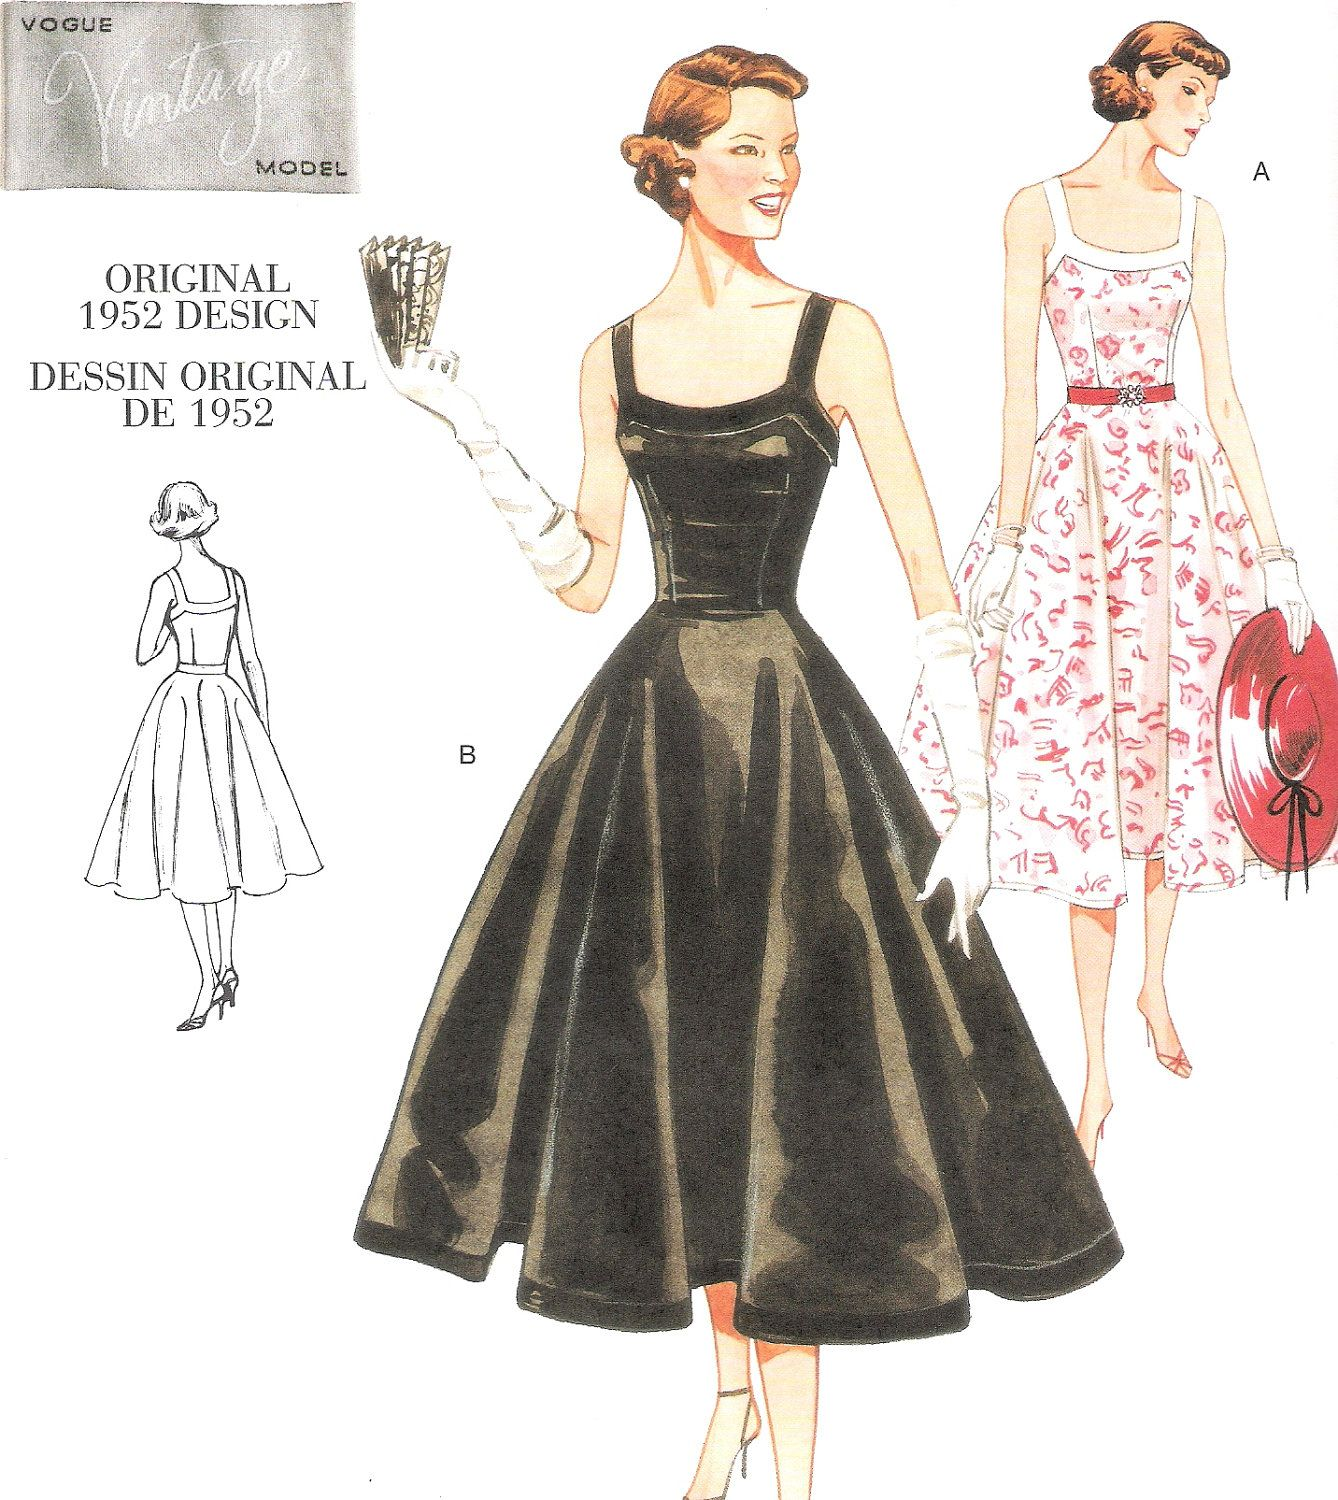 Vintage Vogue 50s Swing Dress Sewing Pattern Sizes 12 16